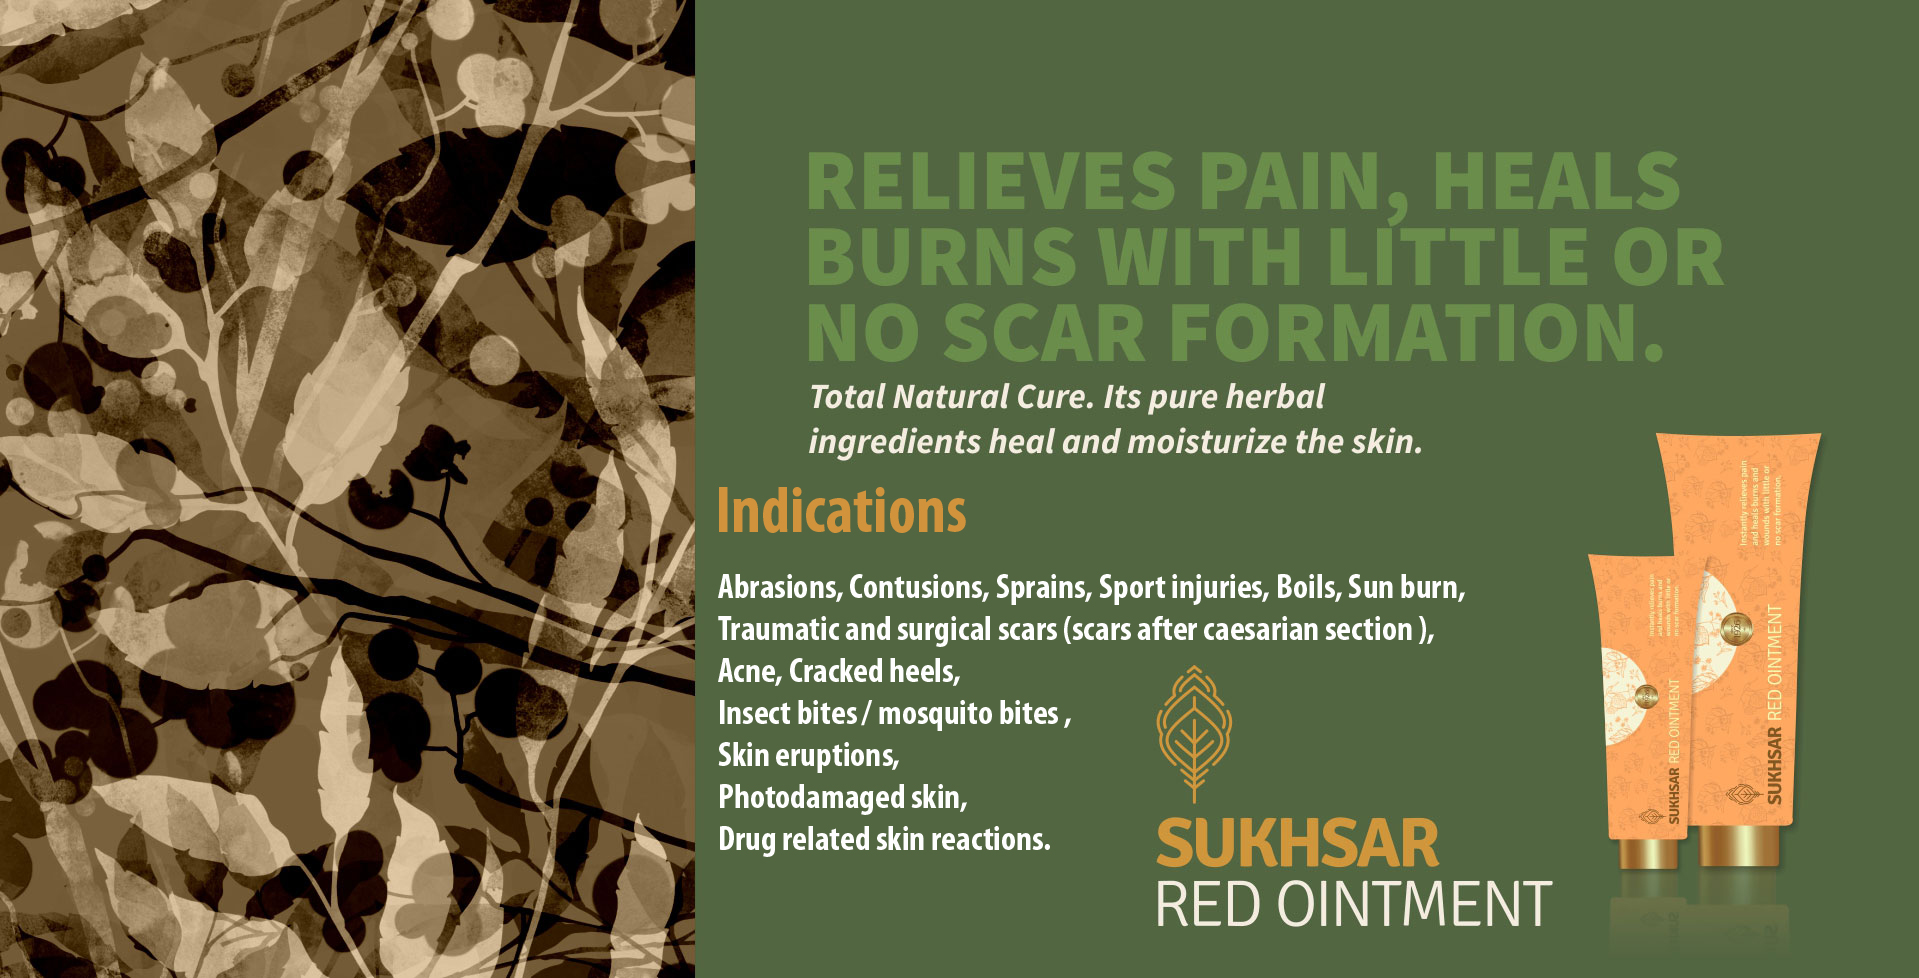 Indus | Sukhsar Red Ointment